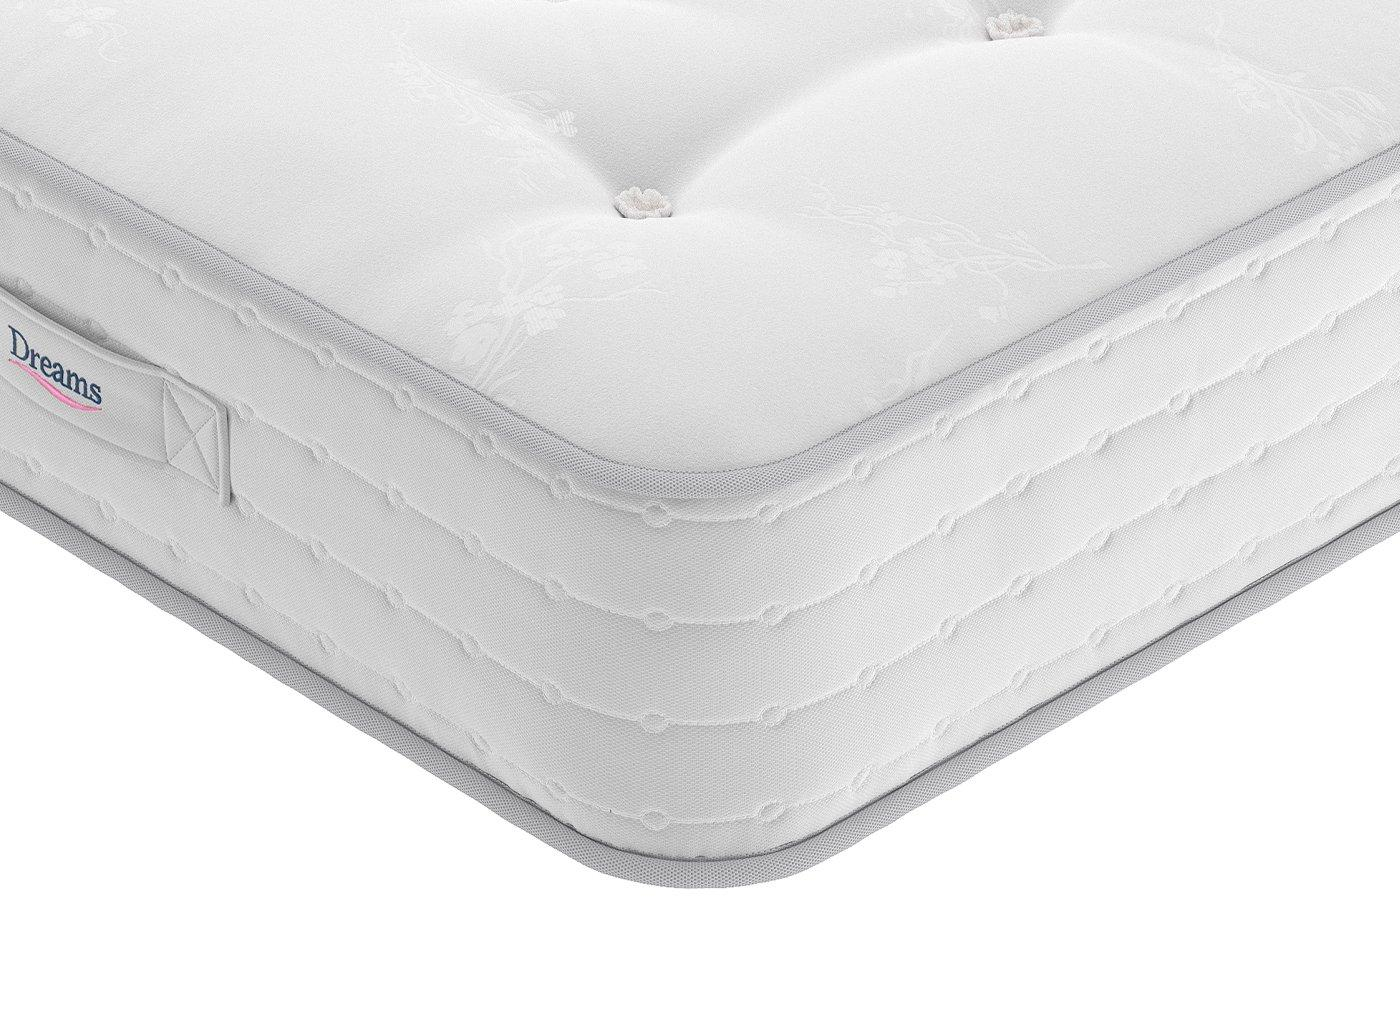 Reynolds 1000 Pocket Sprung Mattress - Orthopaedic 6'0 Super king